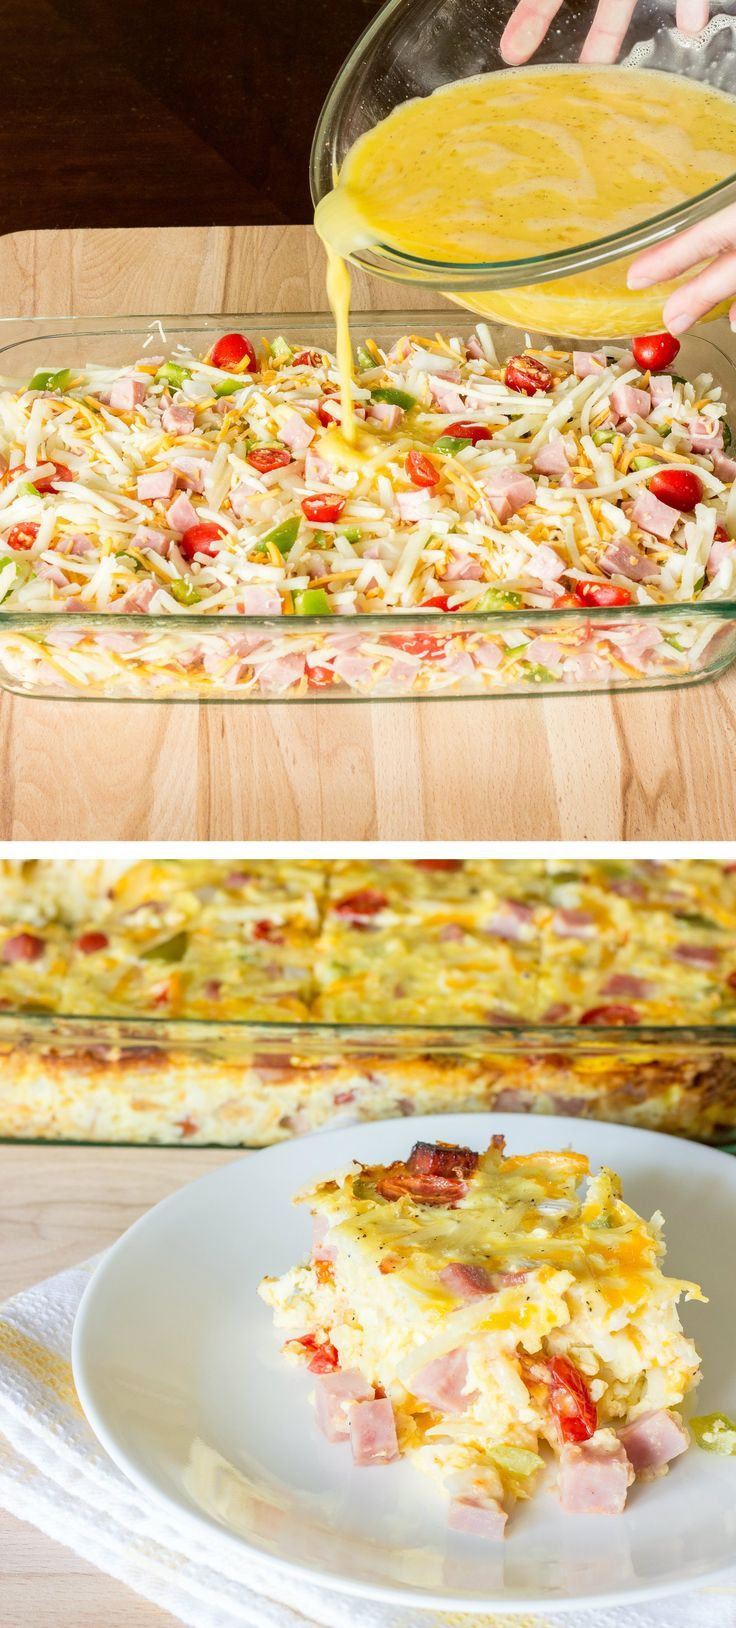 Easy Denver Omelet Hash Brown Casserole - Beaten eggs are poured over a mix of hash browns, ham, cheese, bell pepper, onion, and tomato; then baked.